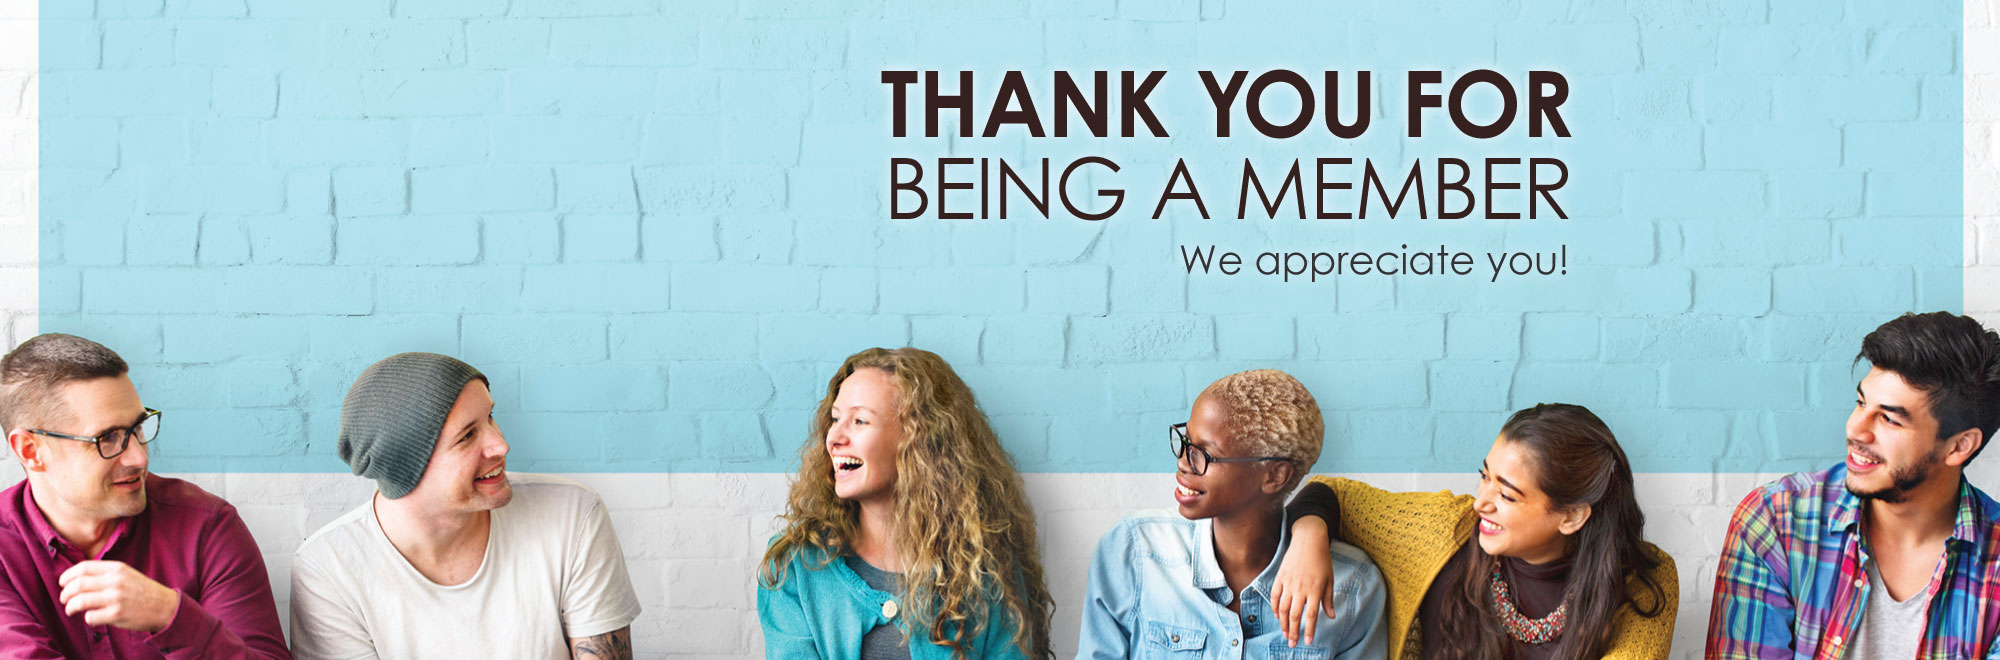 Thank you for being a member. We appreciate you!